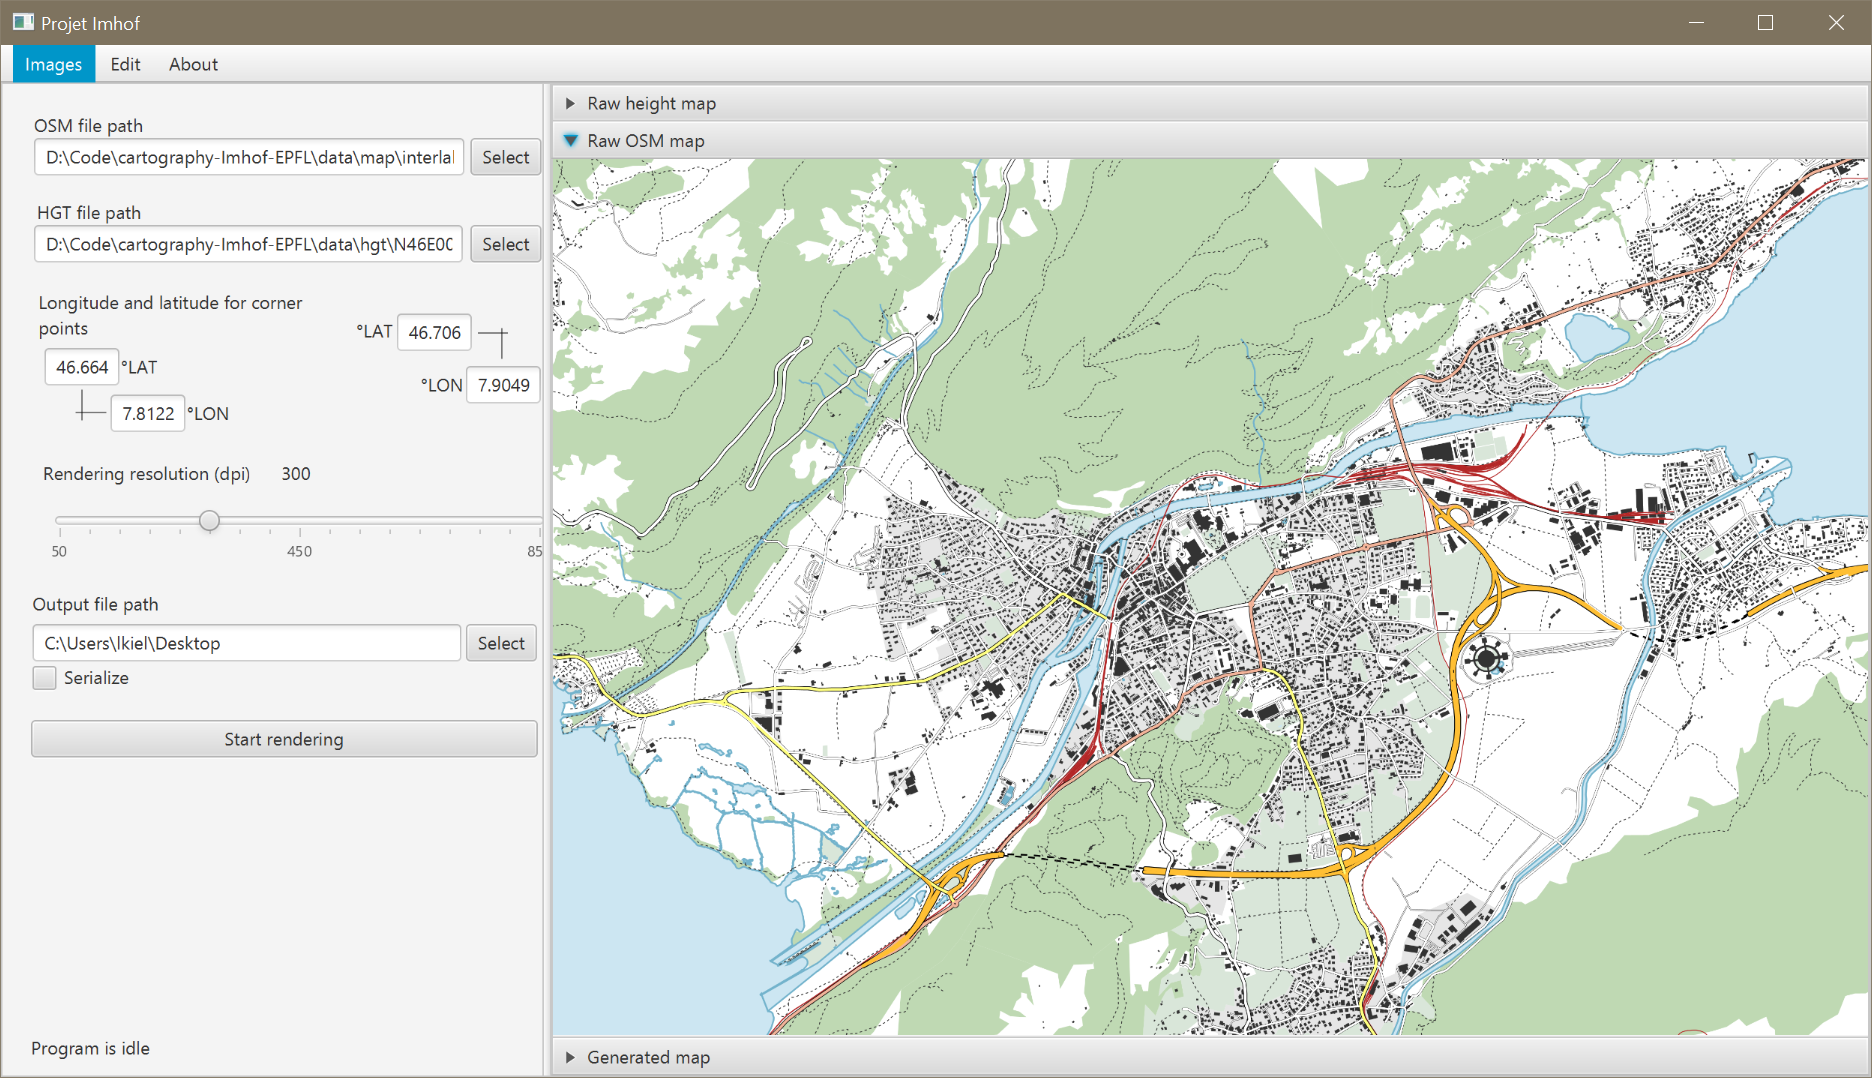 Illustration interface with raw map